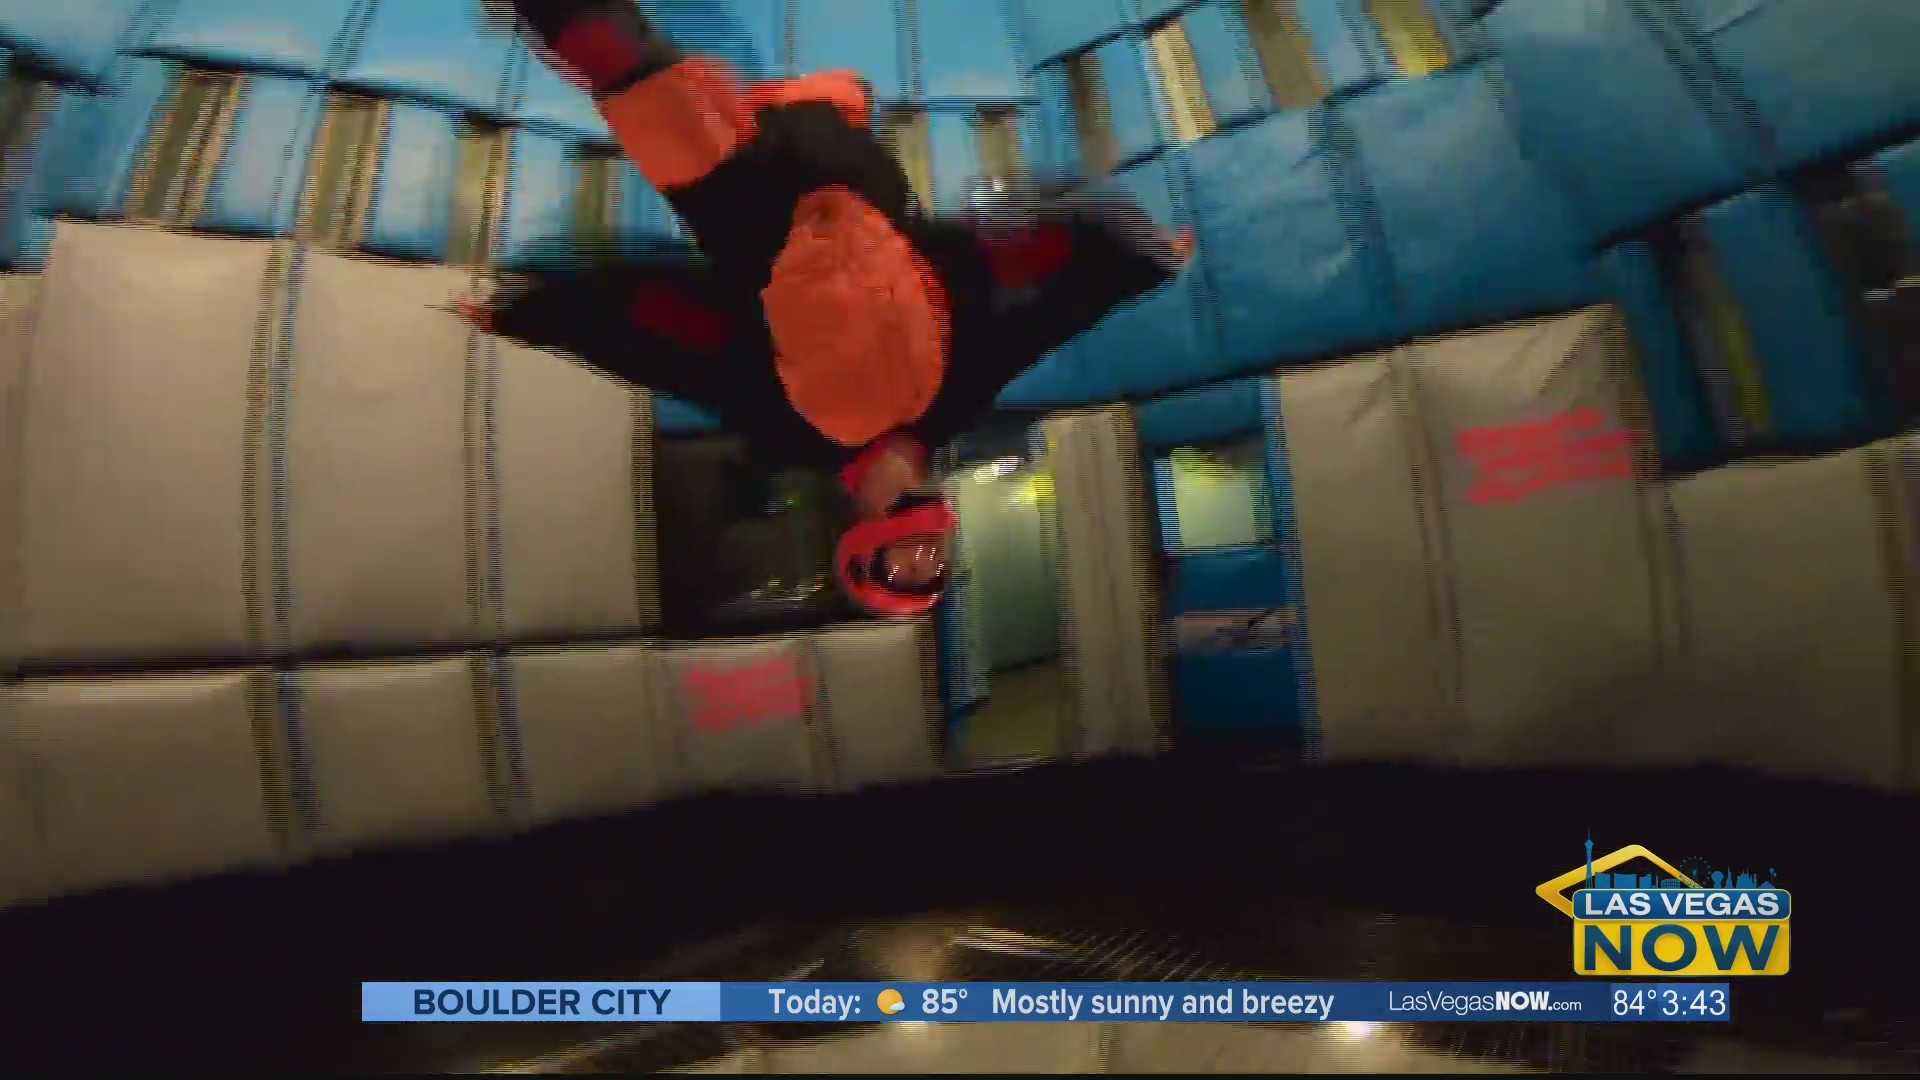 Flying high with mom at Vegas Indoor Skydiving